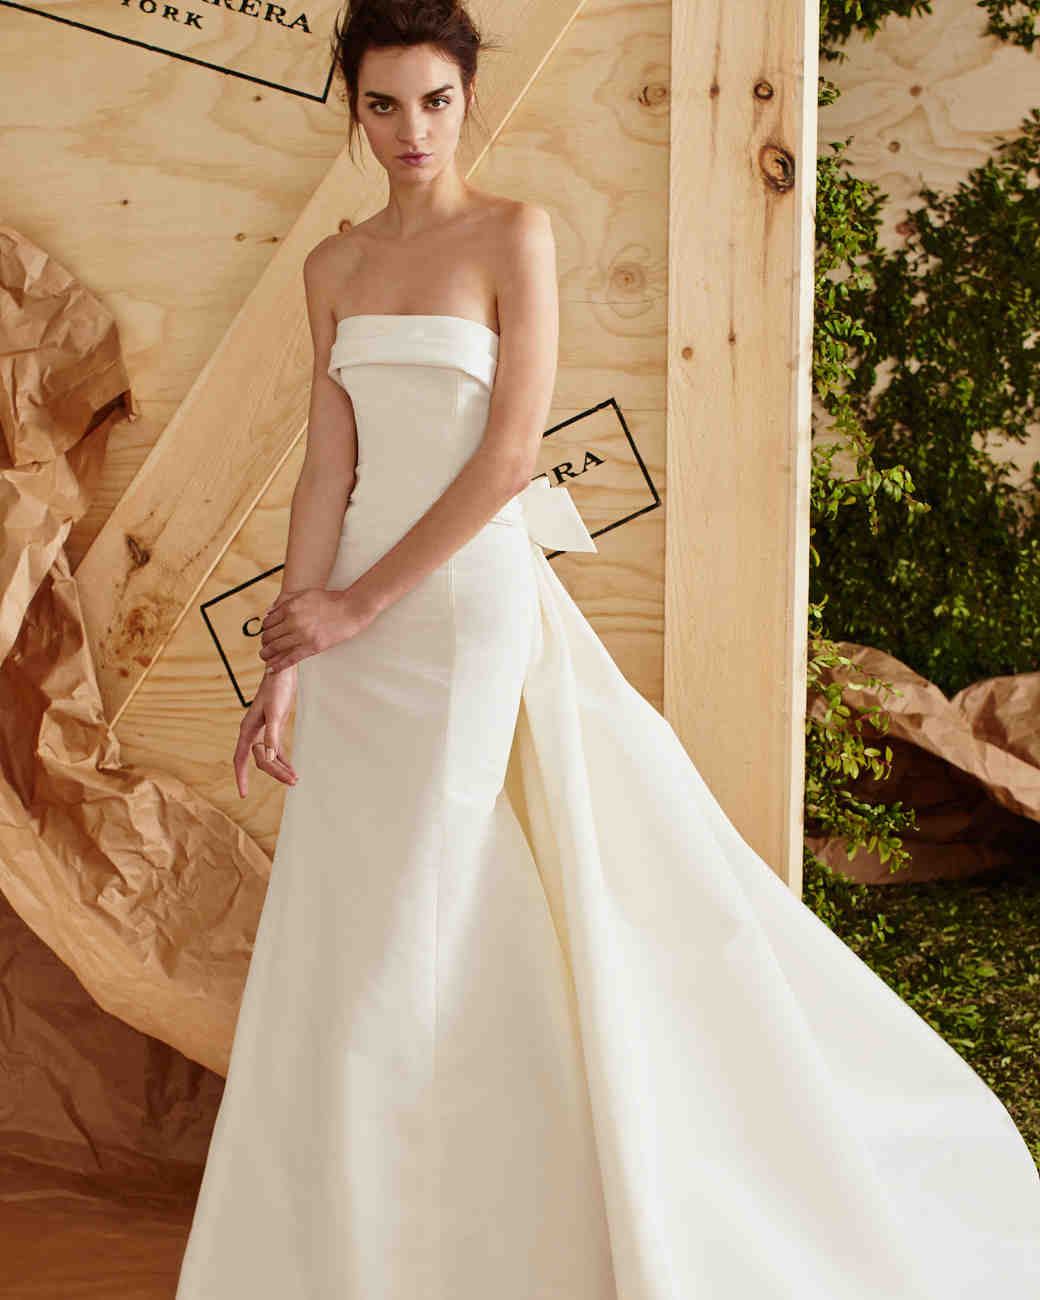 Dress Gowns For Weddings: Wedding Dresses By Style